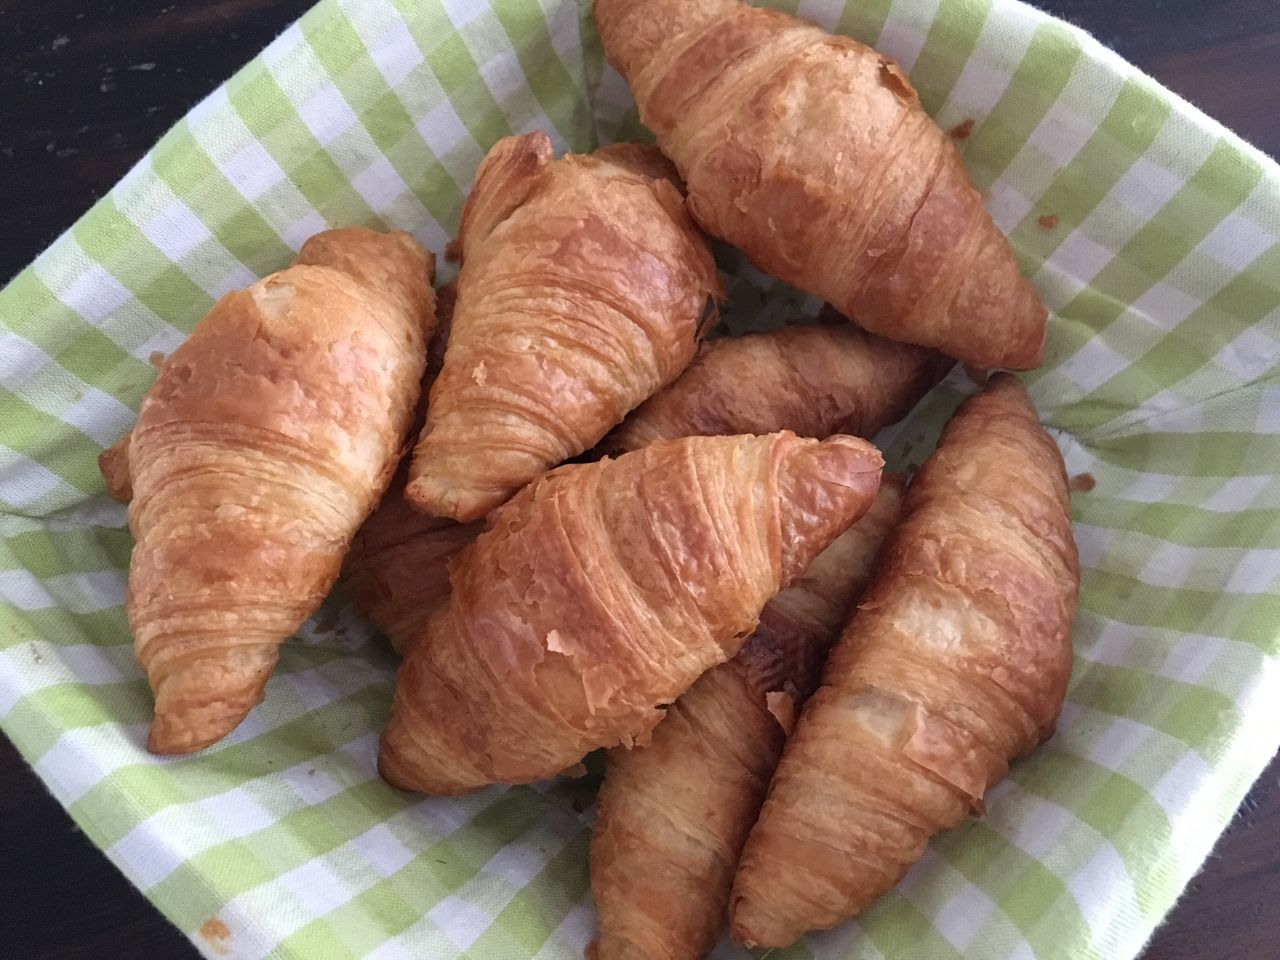 Croissants Freshly Baked Food And Drink Food Close-up Large Group Of Objects No People Freshness Indoors  Ready-to-eat